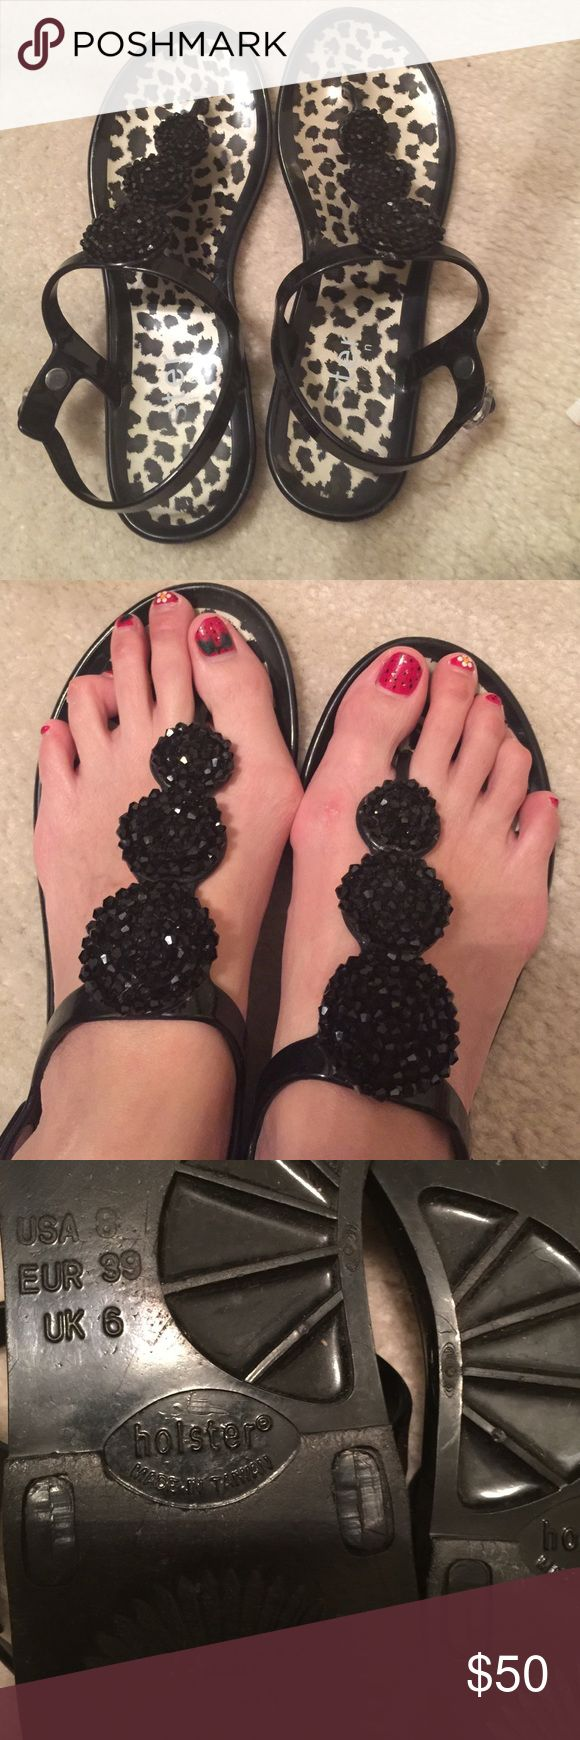 Adorable Jelly Animal Sandals Used but still in good condition. Adorable Jelly Animal Sandals. Size 8. Holster Shoes Sandals